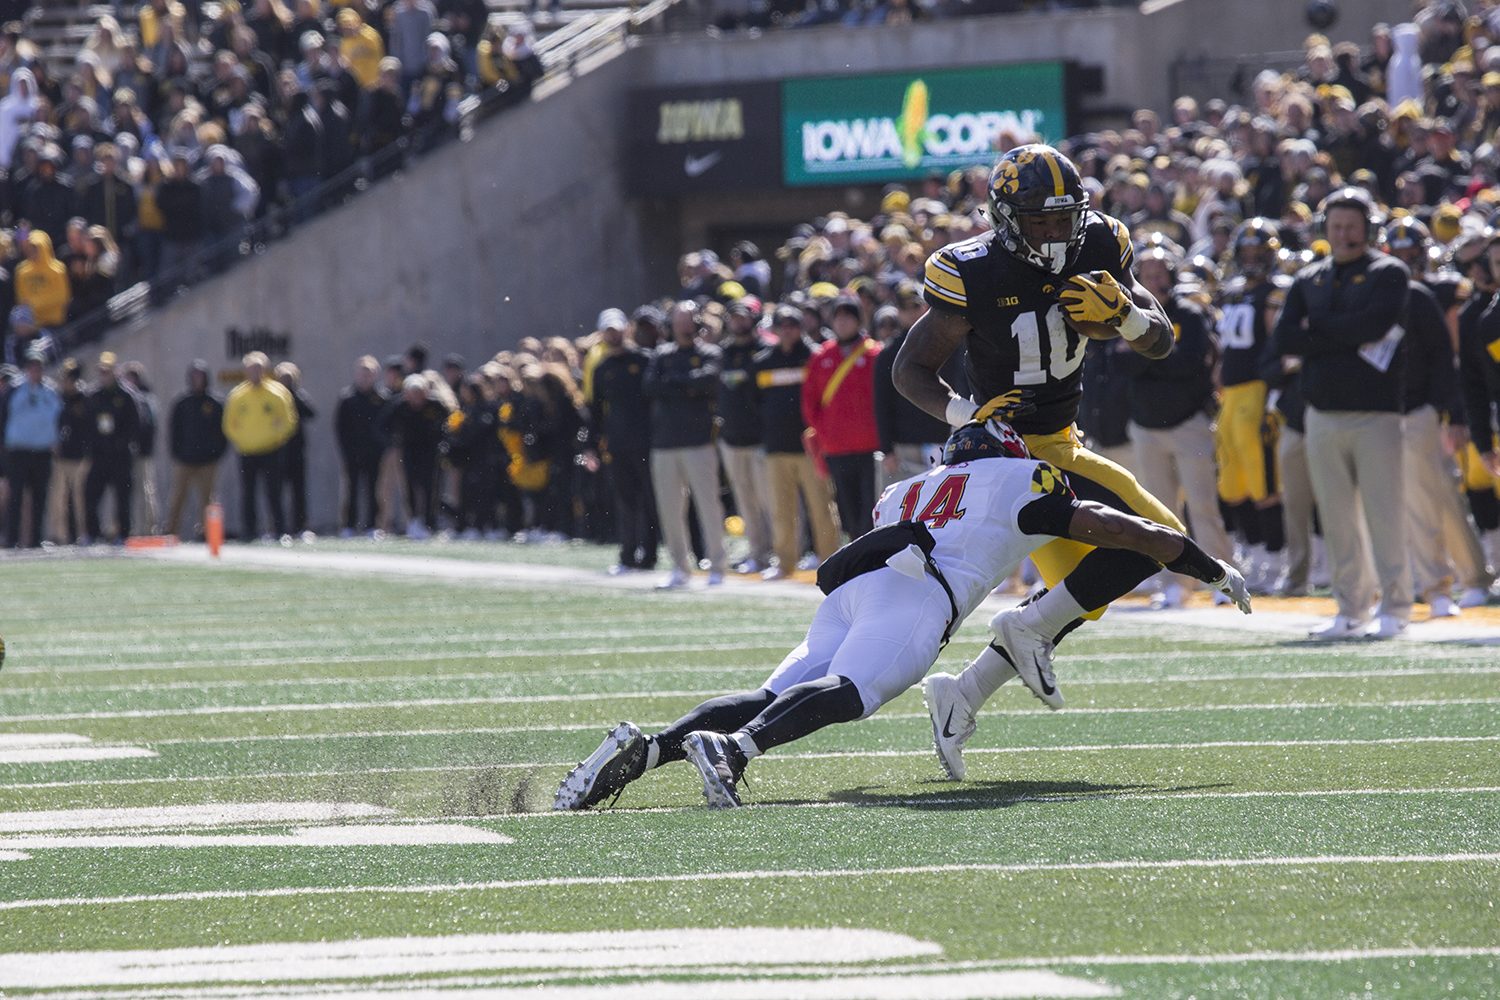 Mekhi+Sargent+jumps+a+Terrapin+defender+during+the+Iowa+vs.+Maryland+game+at+Kinnick+stadium+on+Saturday+Oct.+20%2C+2018.+The+Hawkeyes+defeated+the+Terrapins+23-0.+